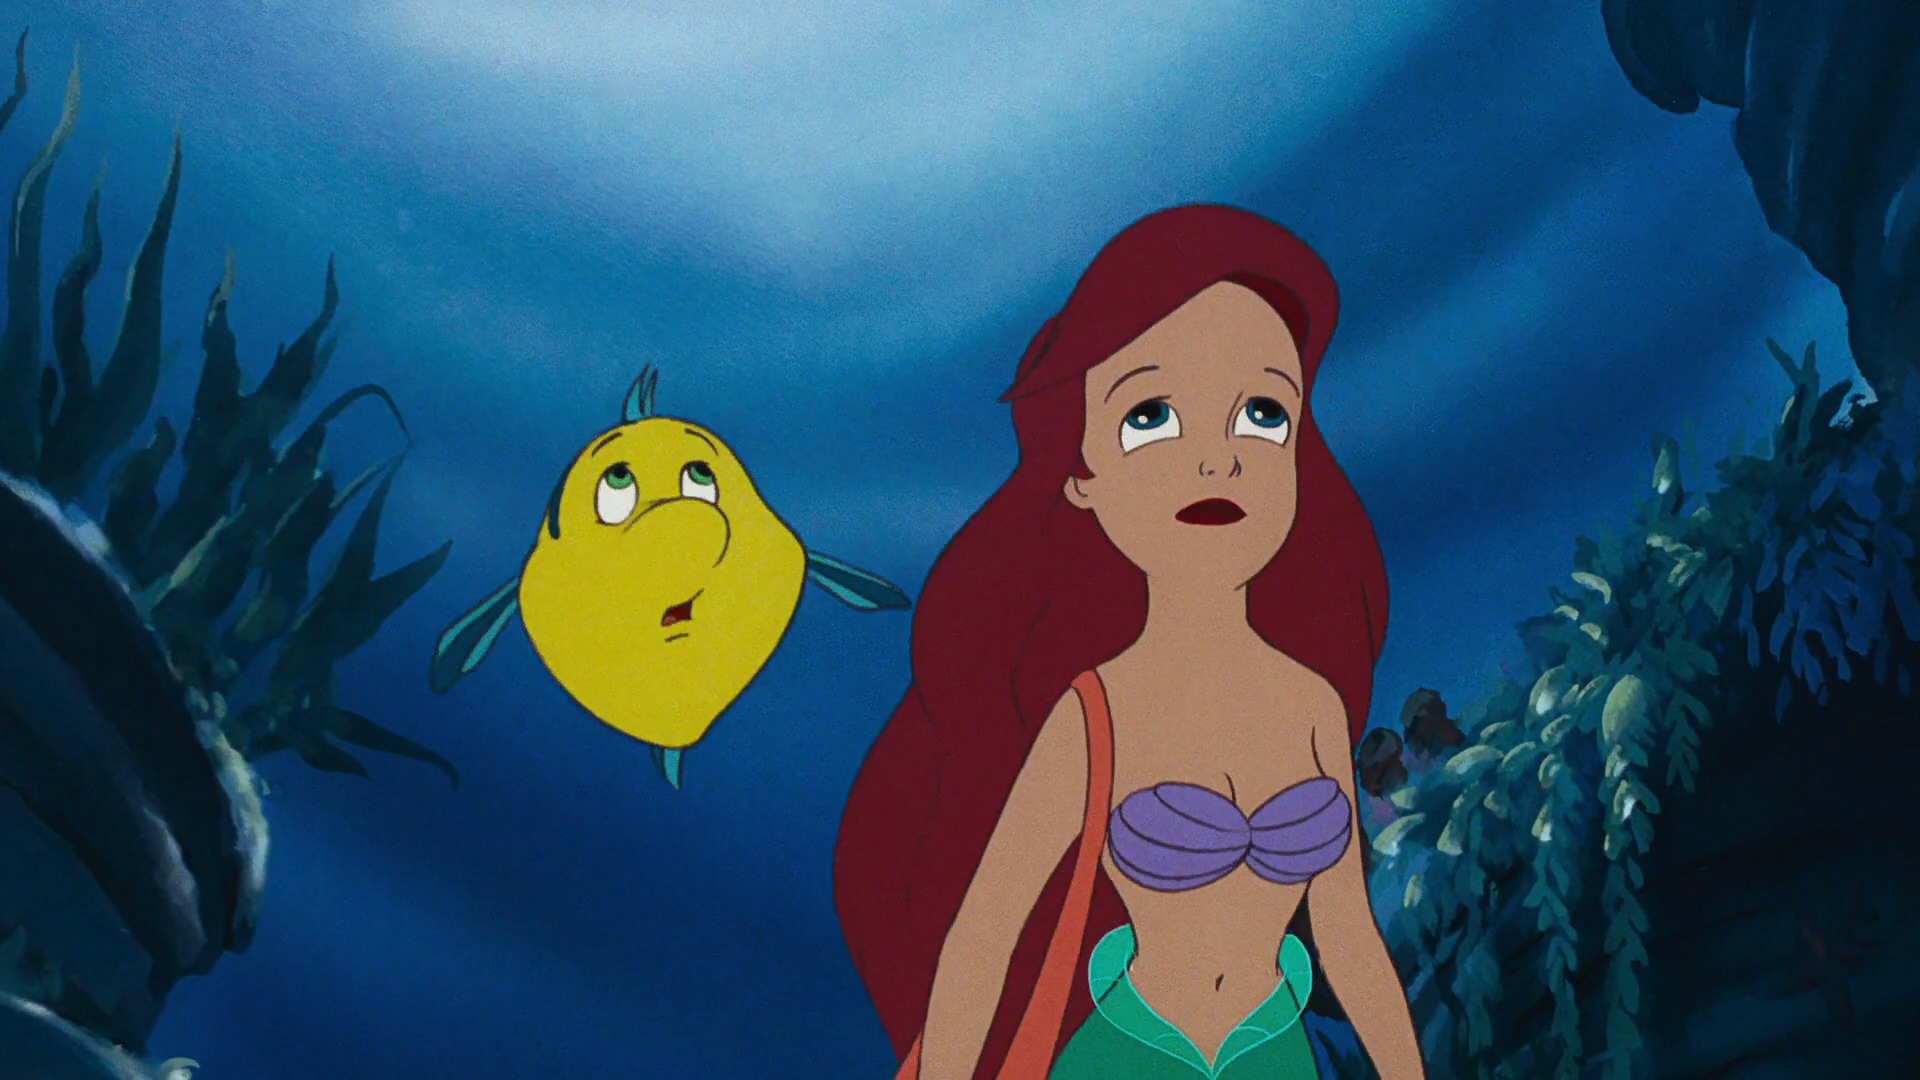 The Little Mermaid 1989 Disney Screencaps Pictures to Pin ...